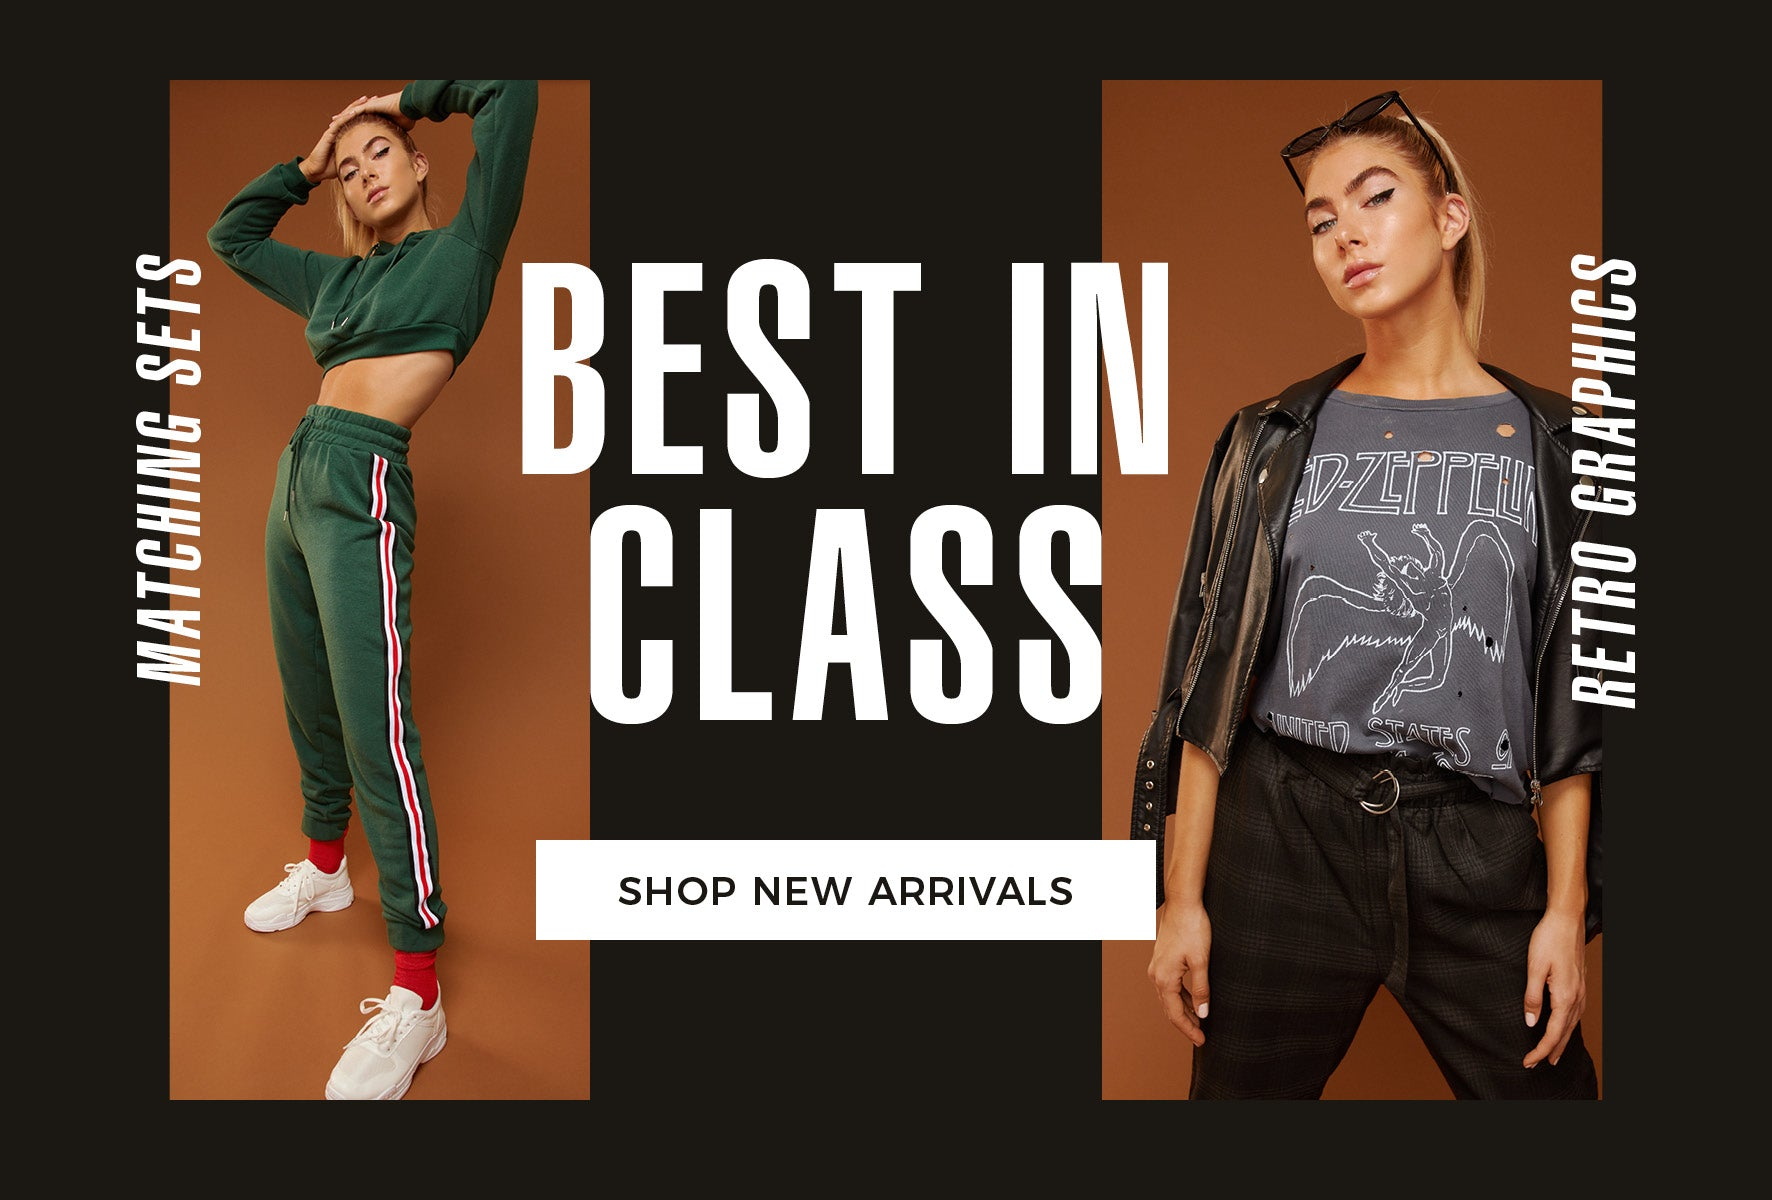 Best in Class - Shop New Arrivals